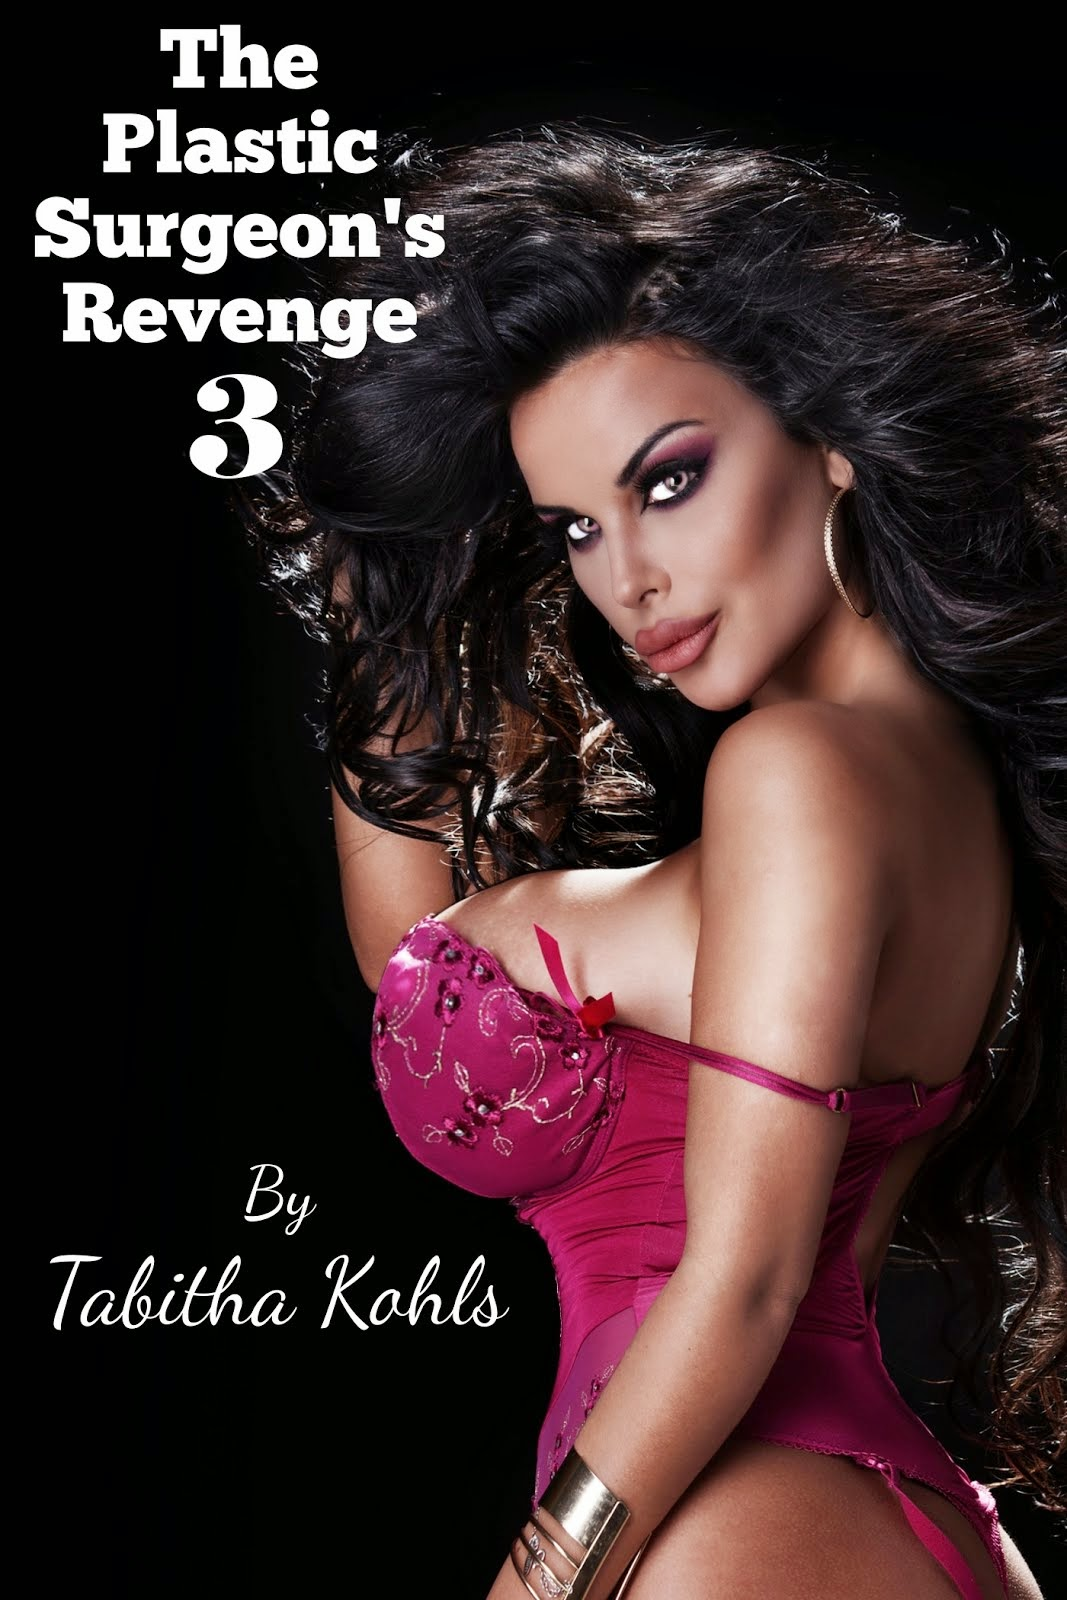 The Plastic Surgeon's Revenge 3